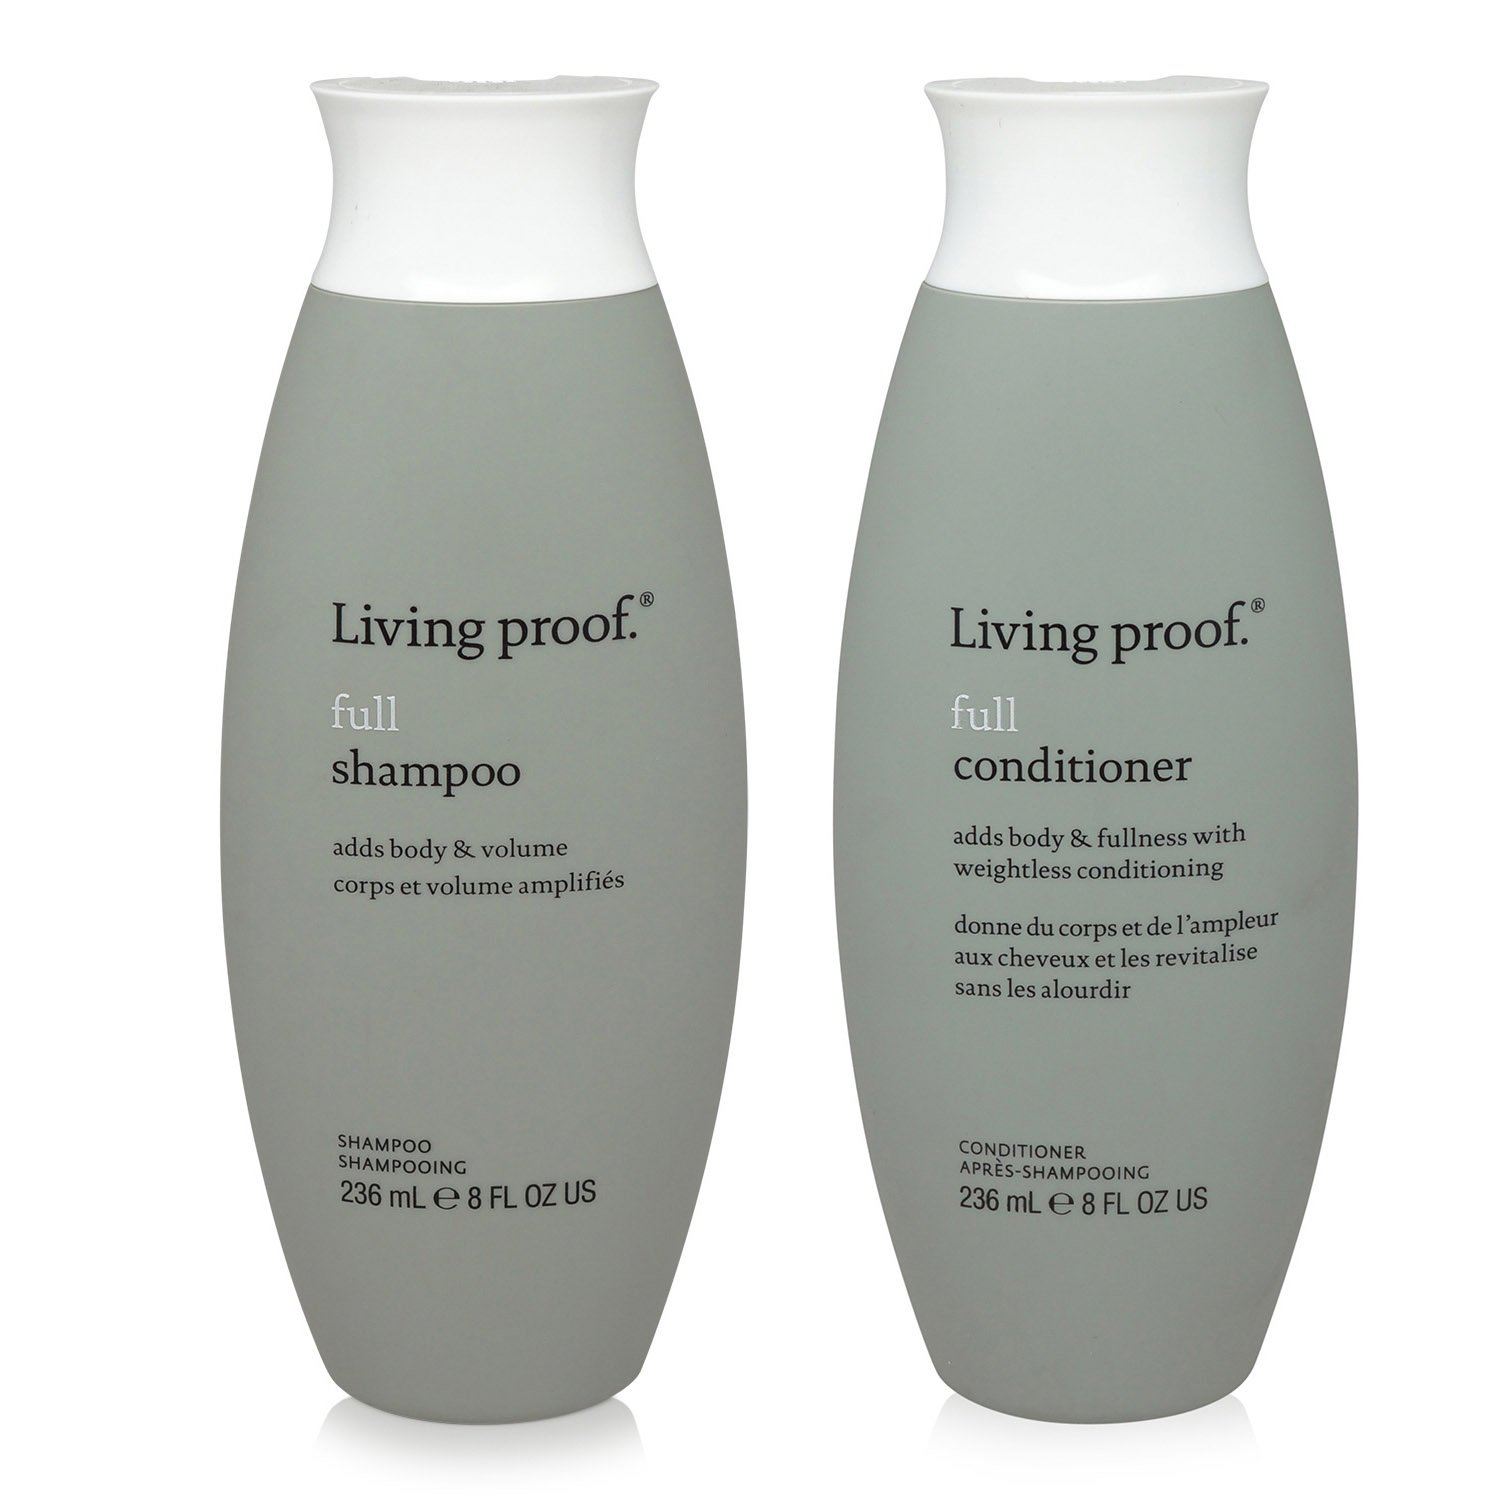 Living Proof, Full Conditioner and Full Shampoo, Two Bottle Set, 8 Oz Each Vidimear